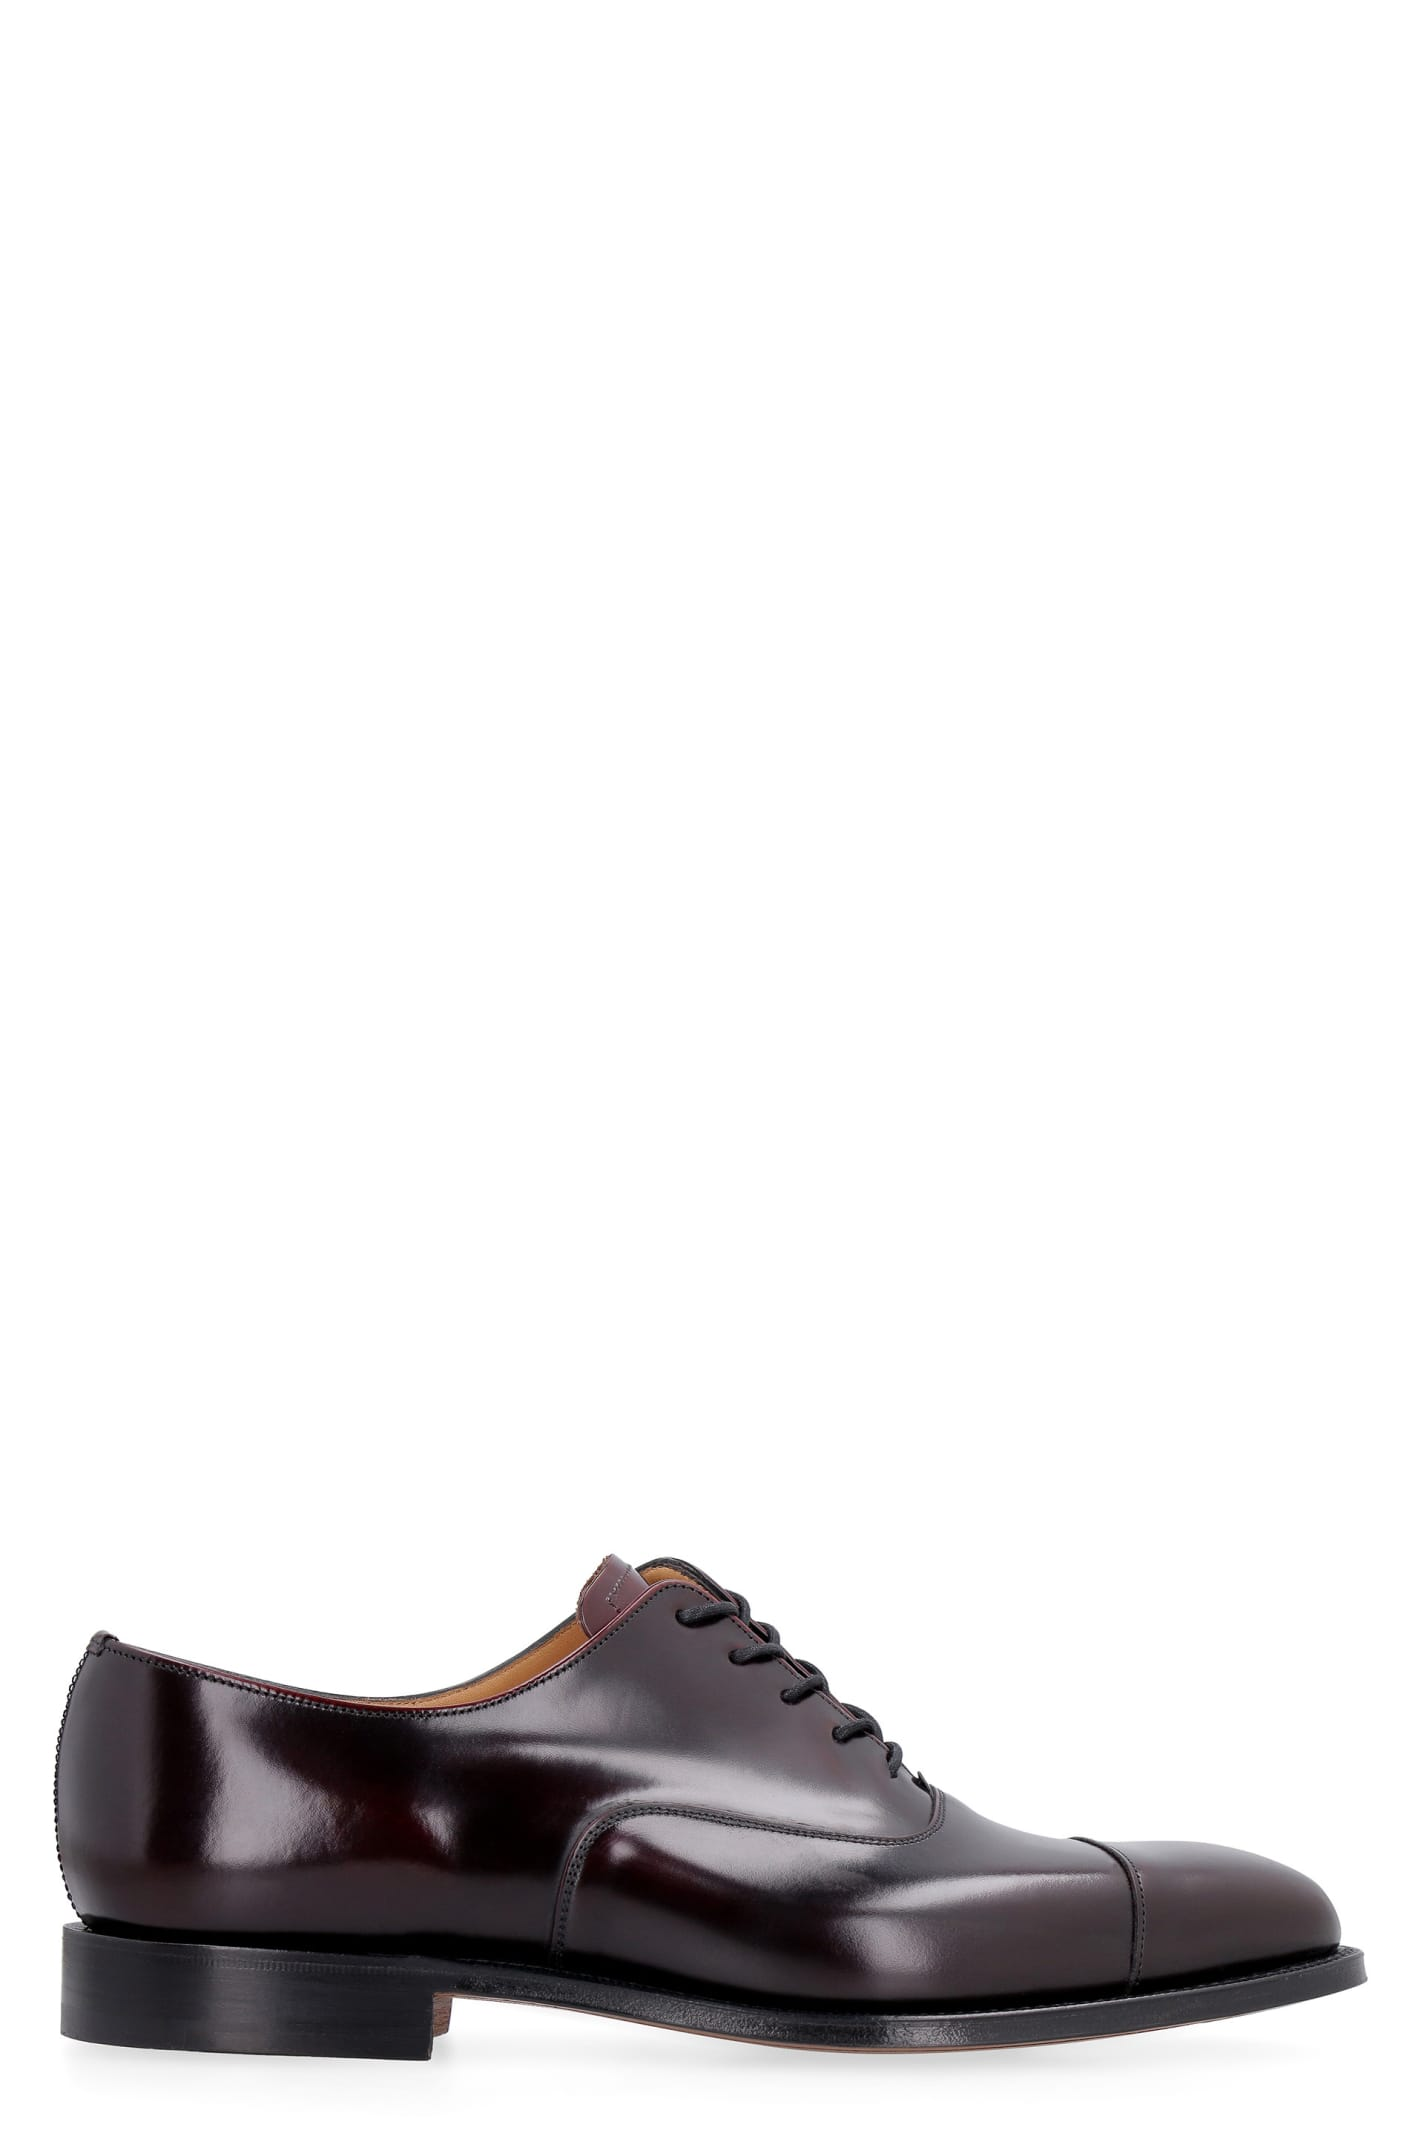 Churchs Falmouth Leather Lace-up Shoes